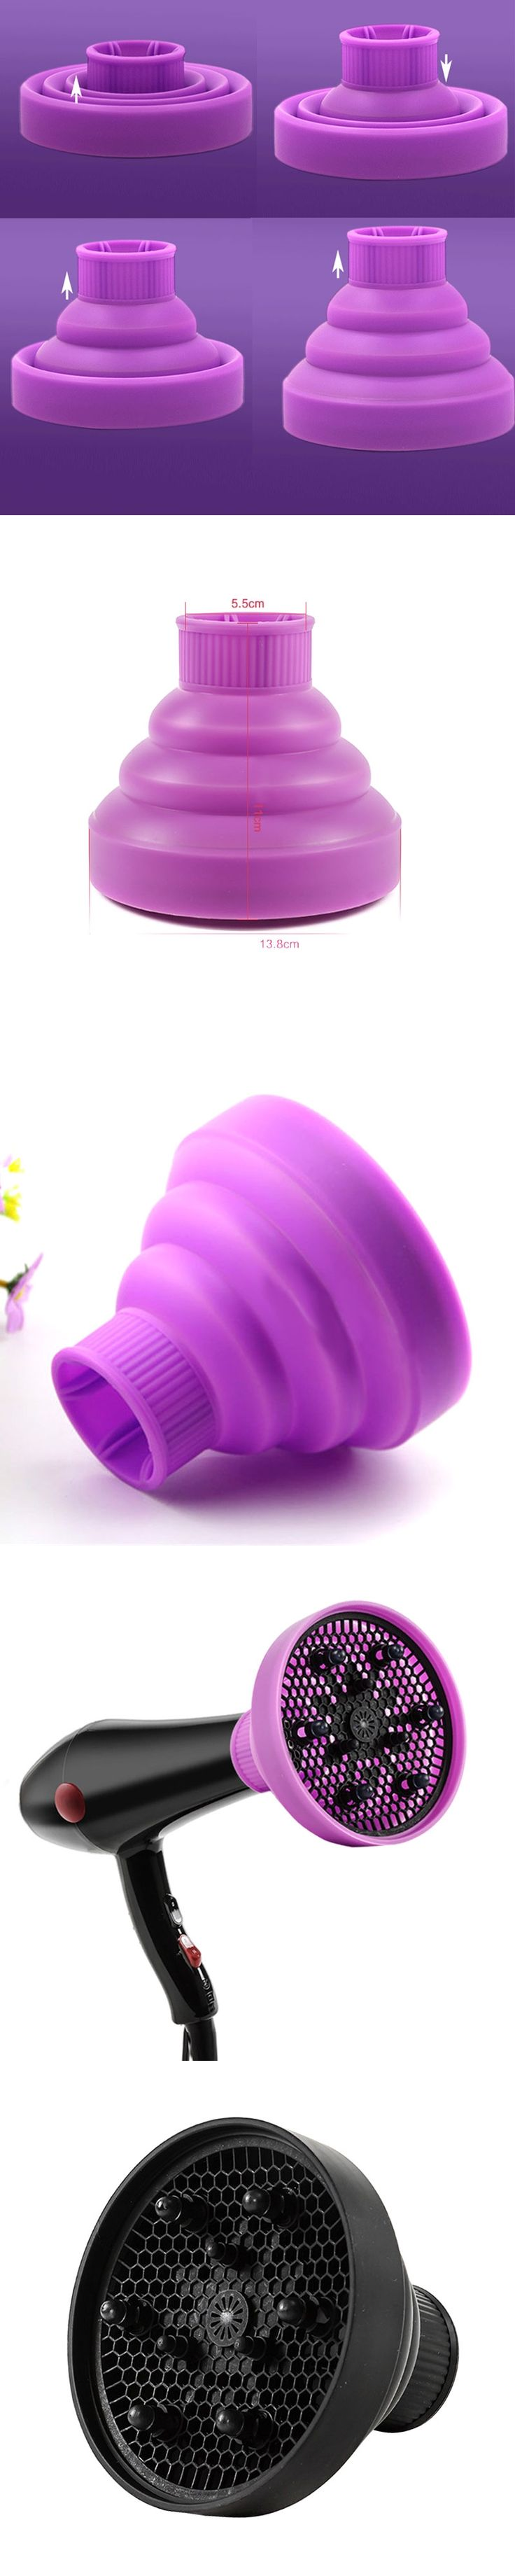 Home Salon Curly Hair Dryer Diffuser Cover Foldable Sillicone Hairdressing Curl DIY Blower Hairs Styling Accessories HS1